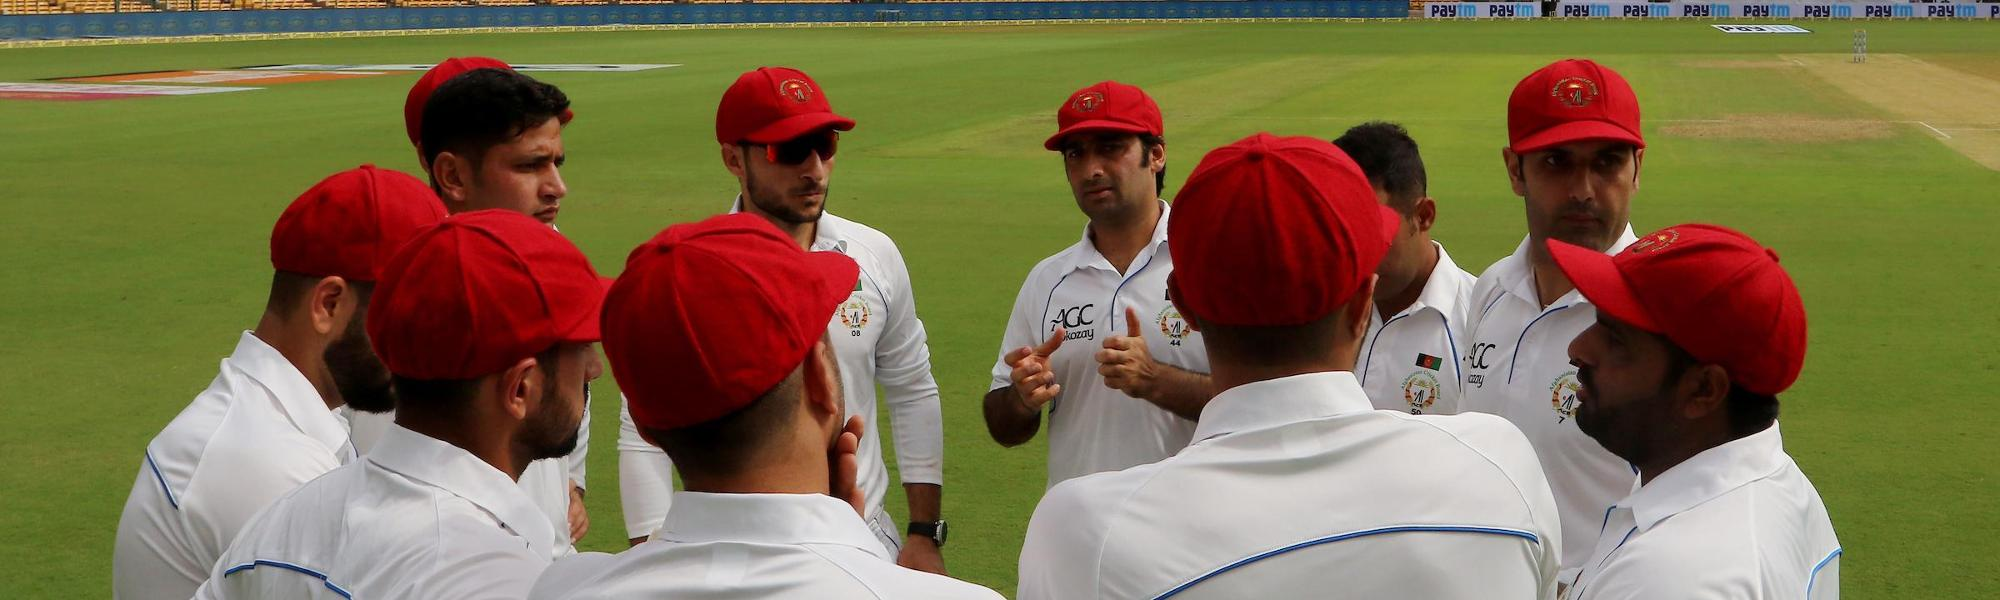 Afghanistan's first taste of Test cricket was tough but this is just the start